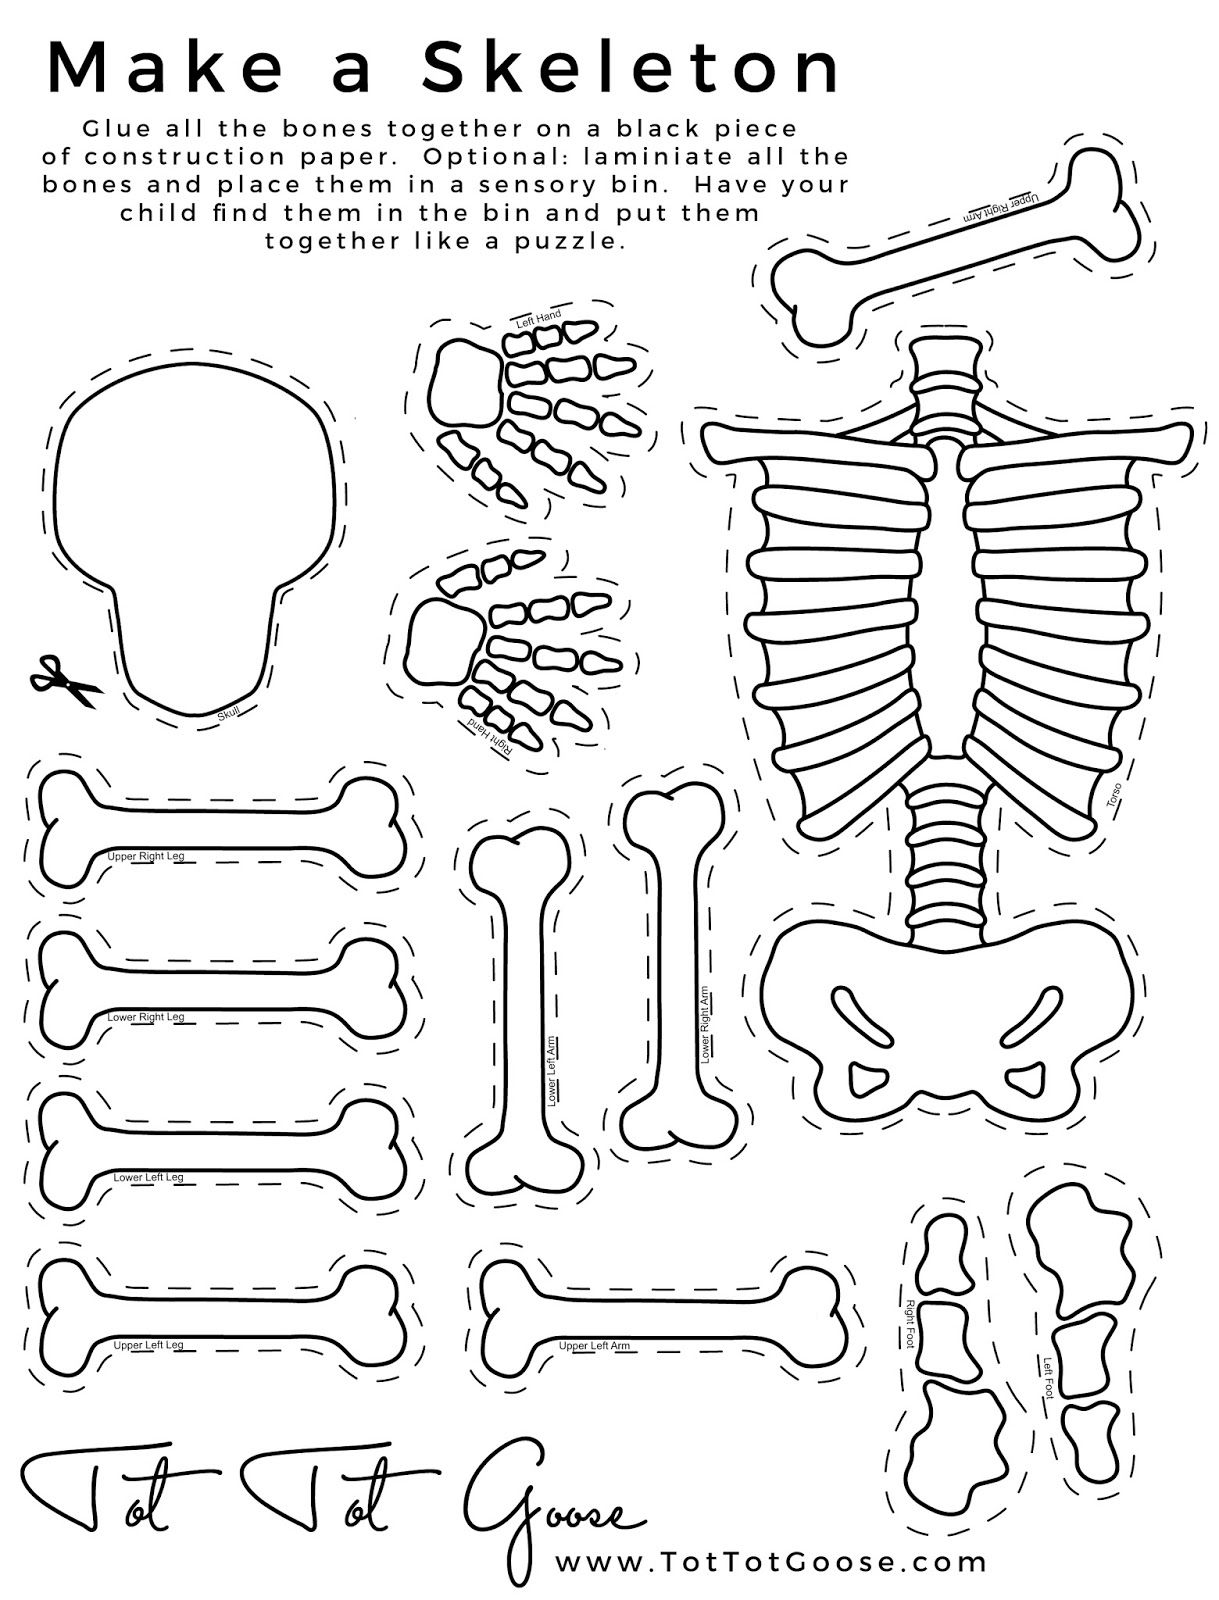 Skeleton printable all about me theme preschool theme for Skeleton template to cut out